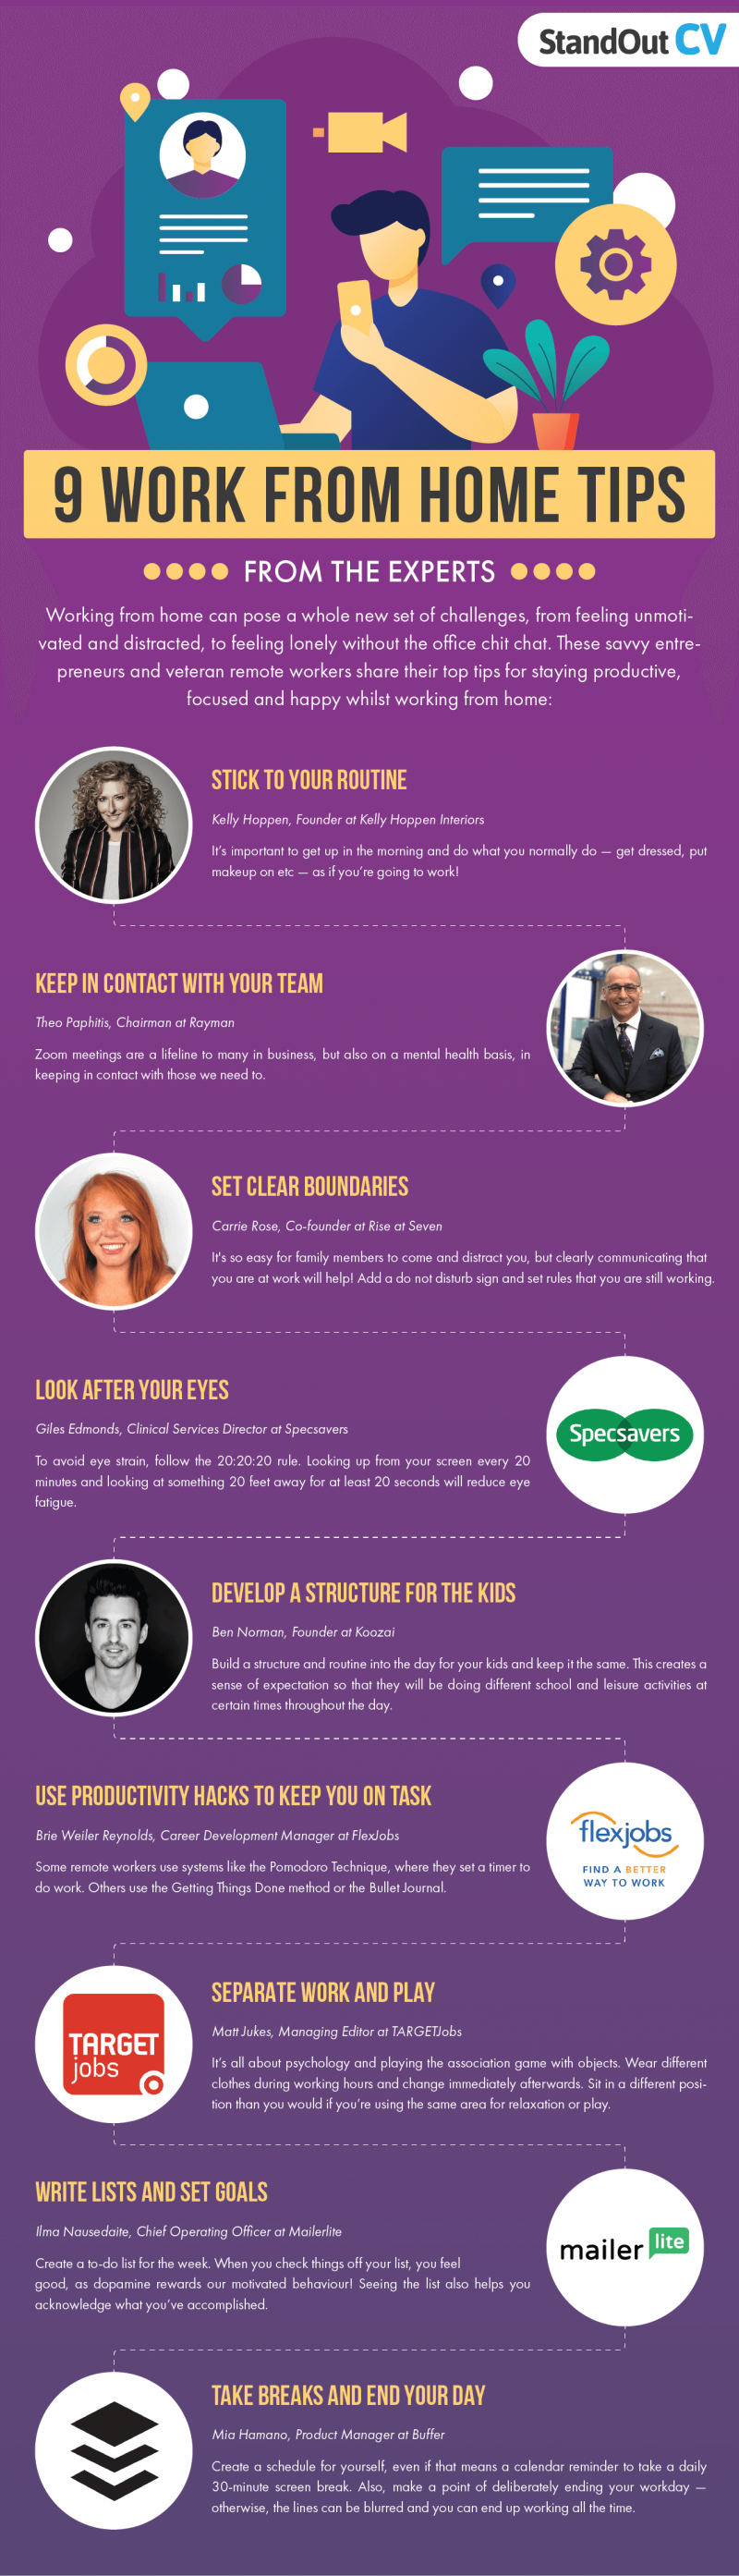 9 work-from-home tips infographic.